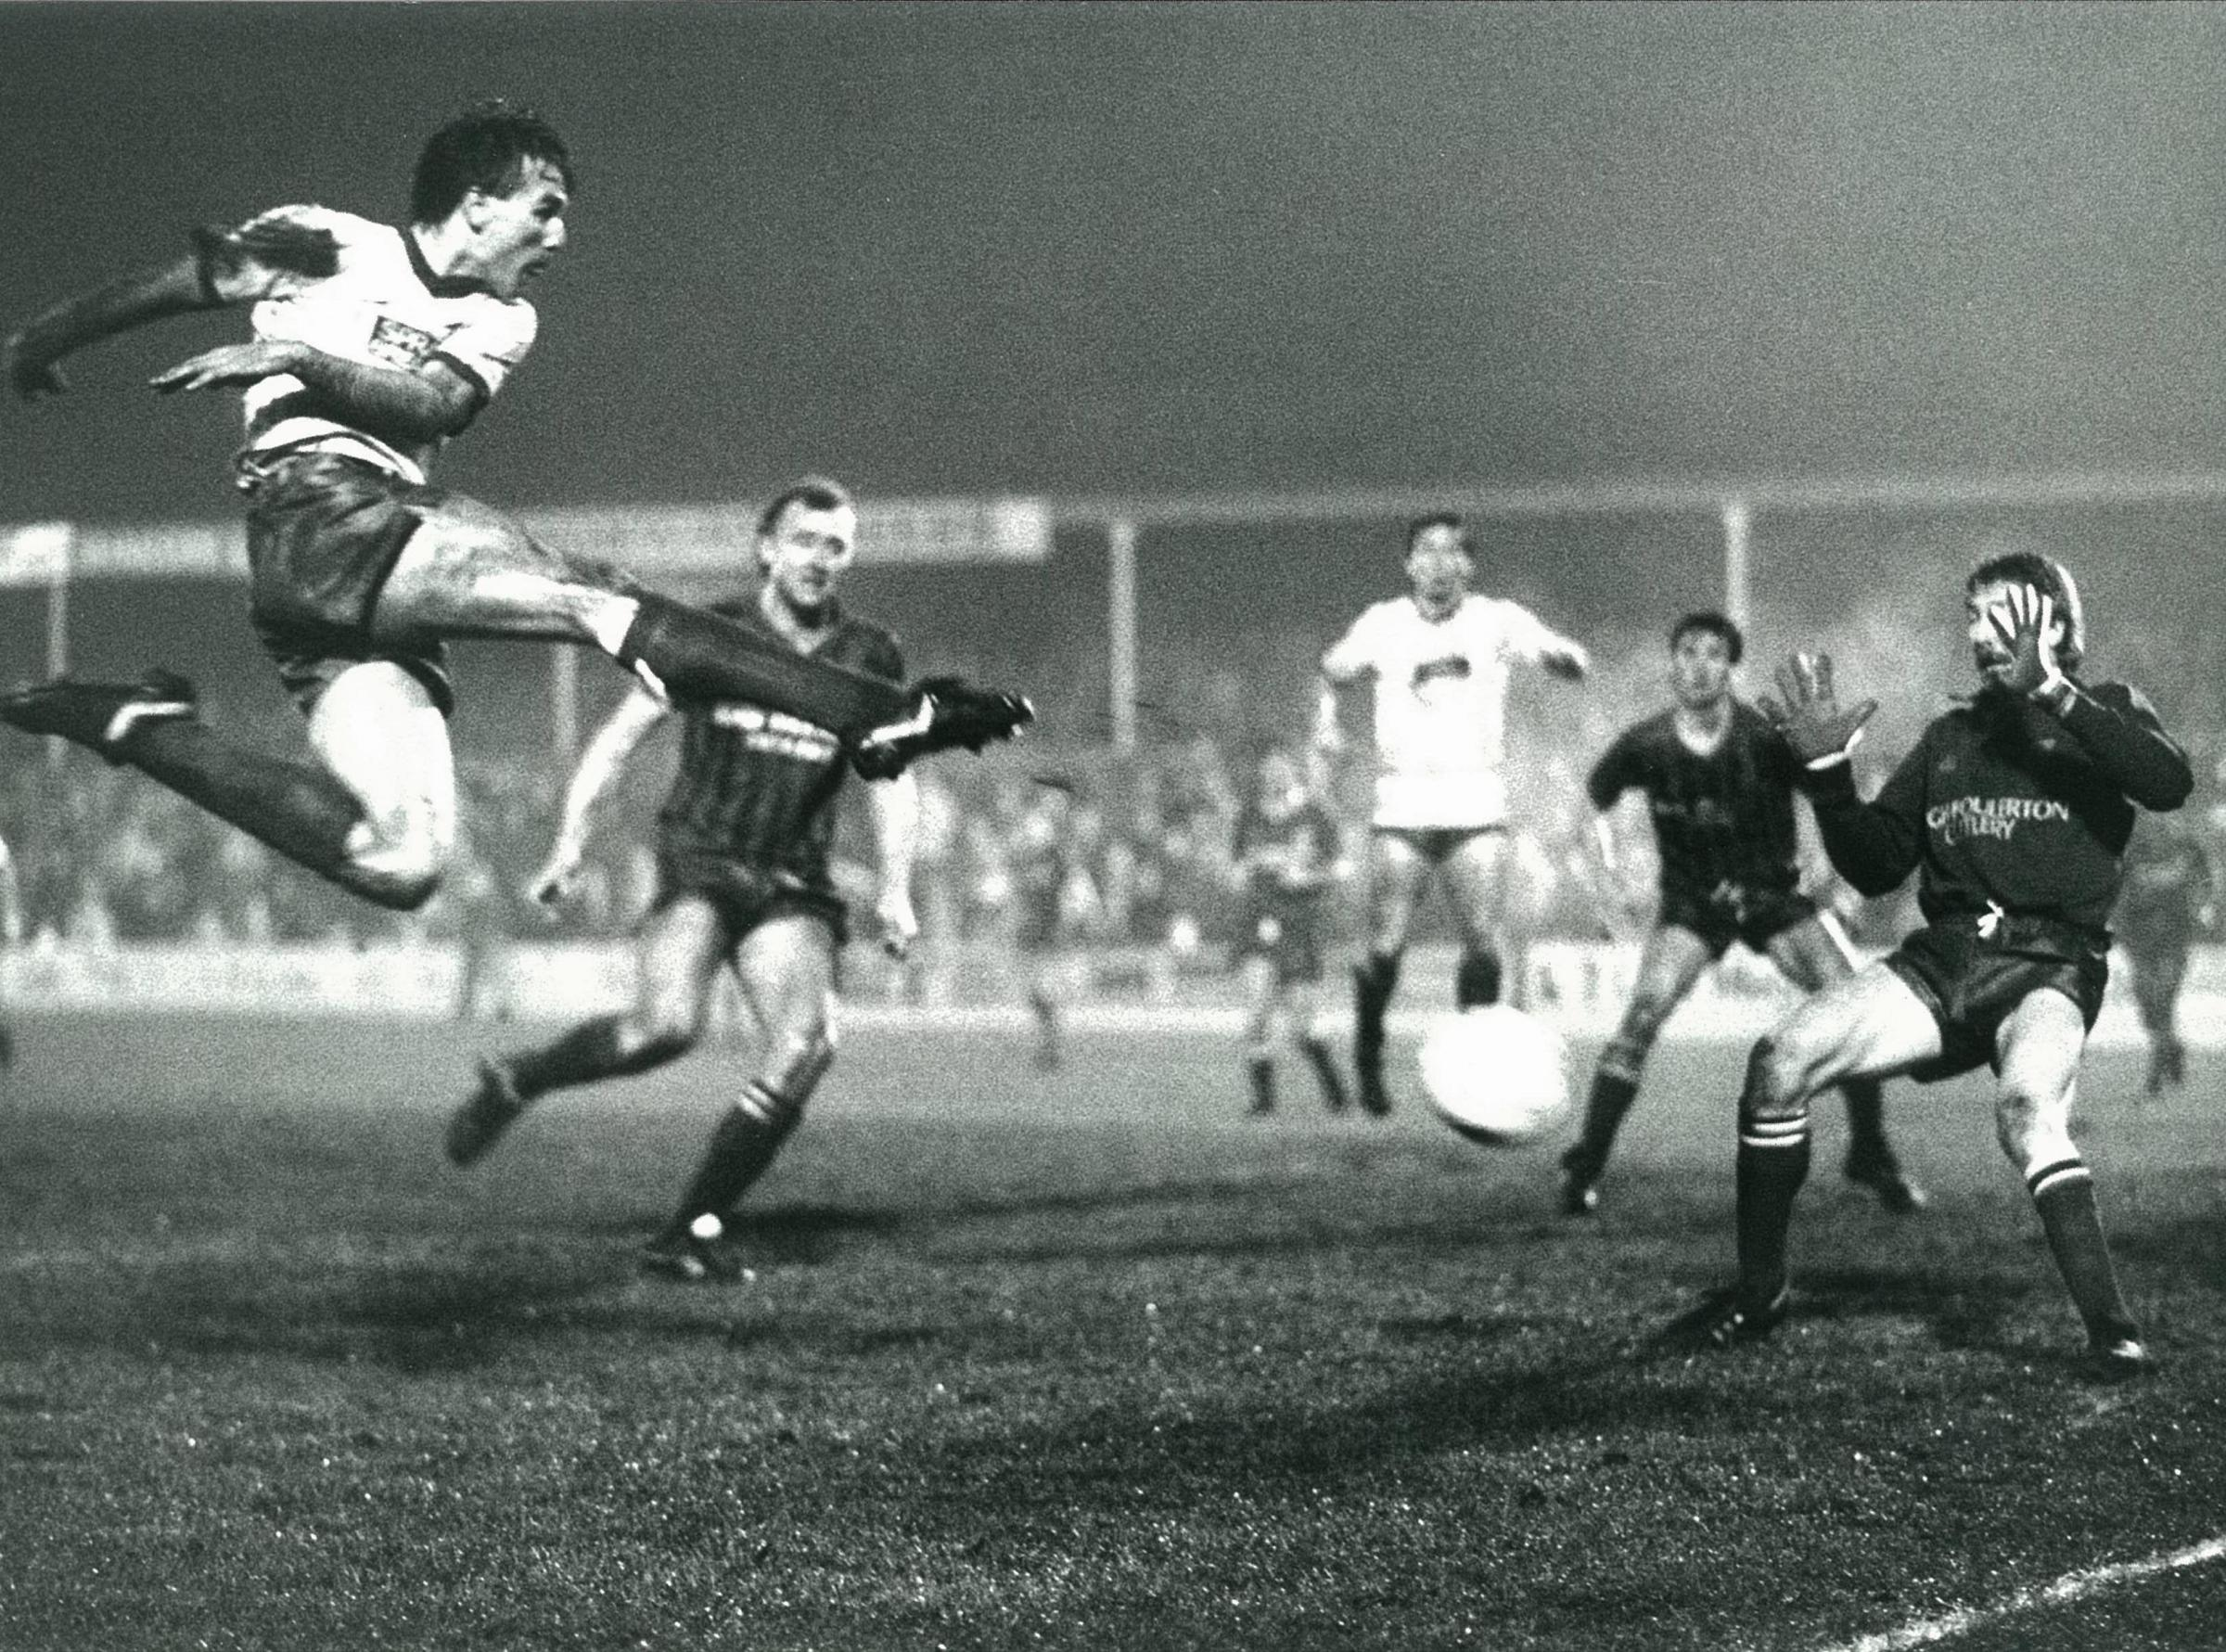 Bury FC through the years: Wayne Entwistle's place in FA Cup history